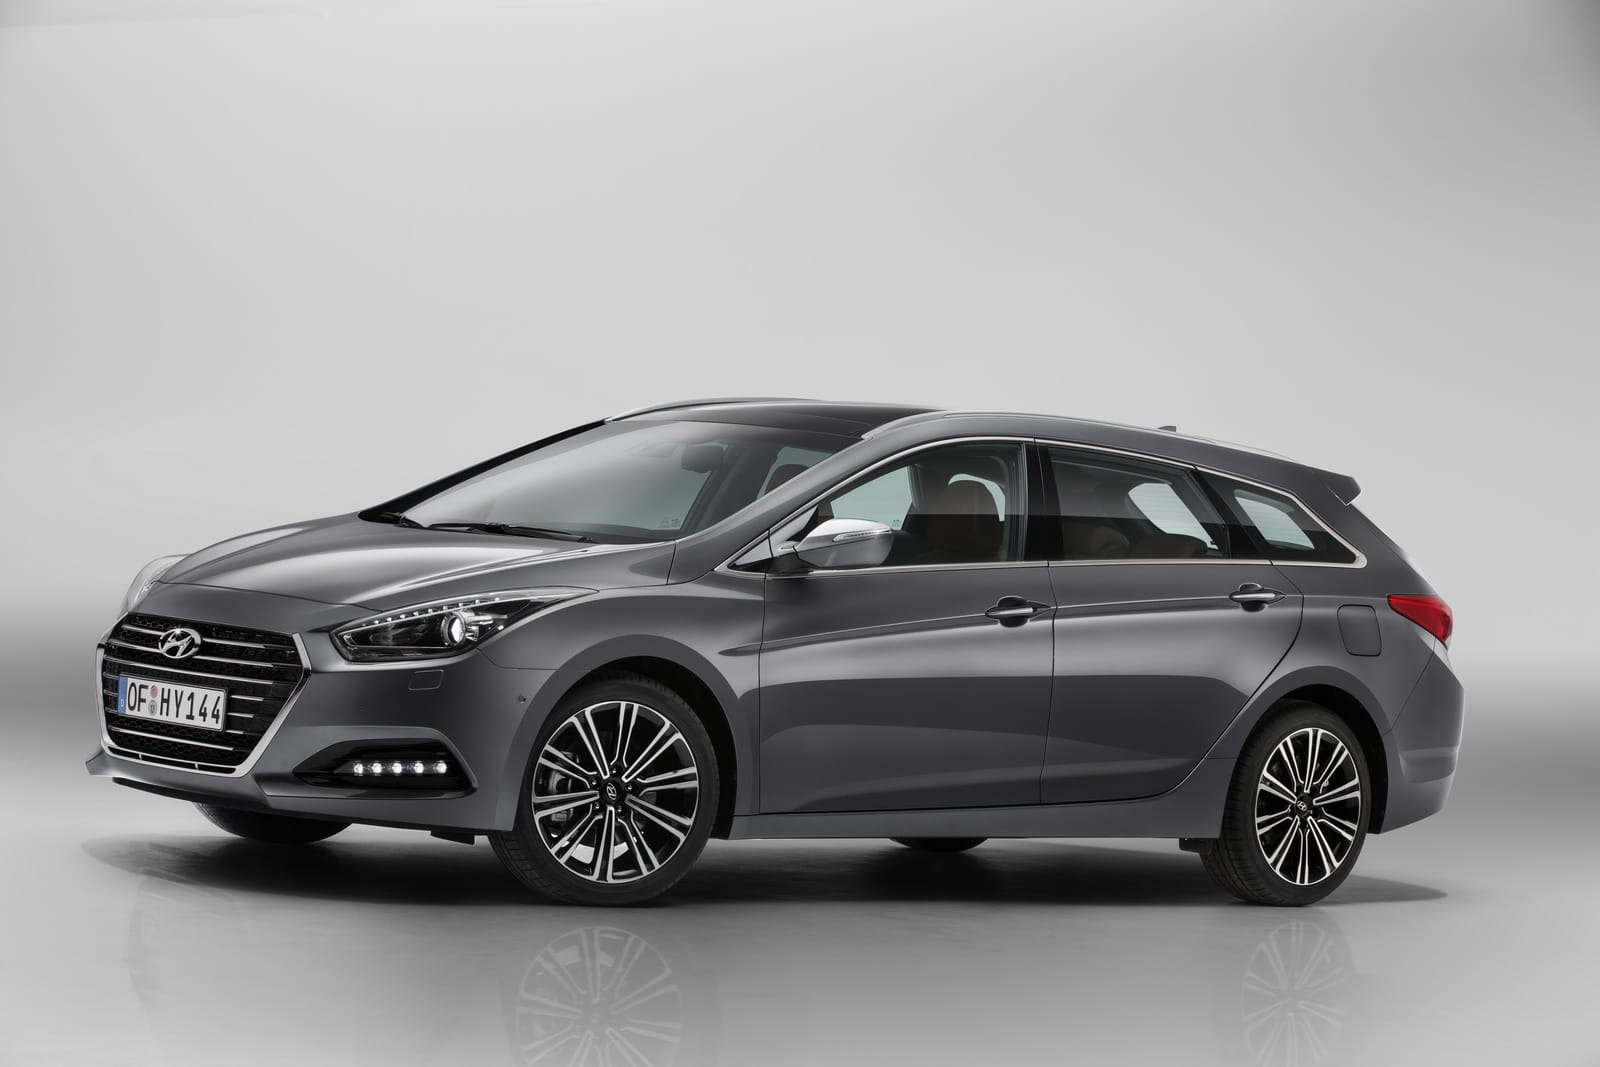 La Hyundai i40 modernise son allure